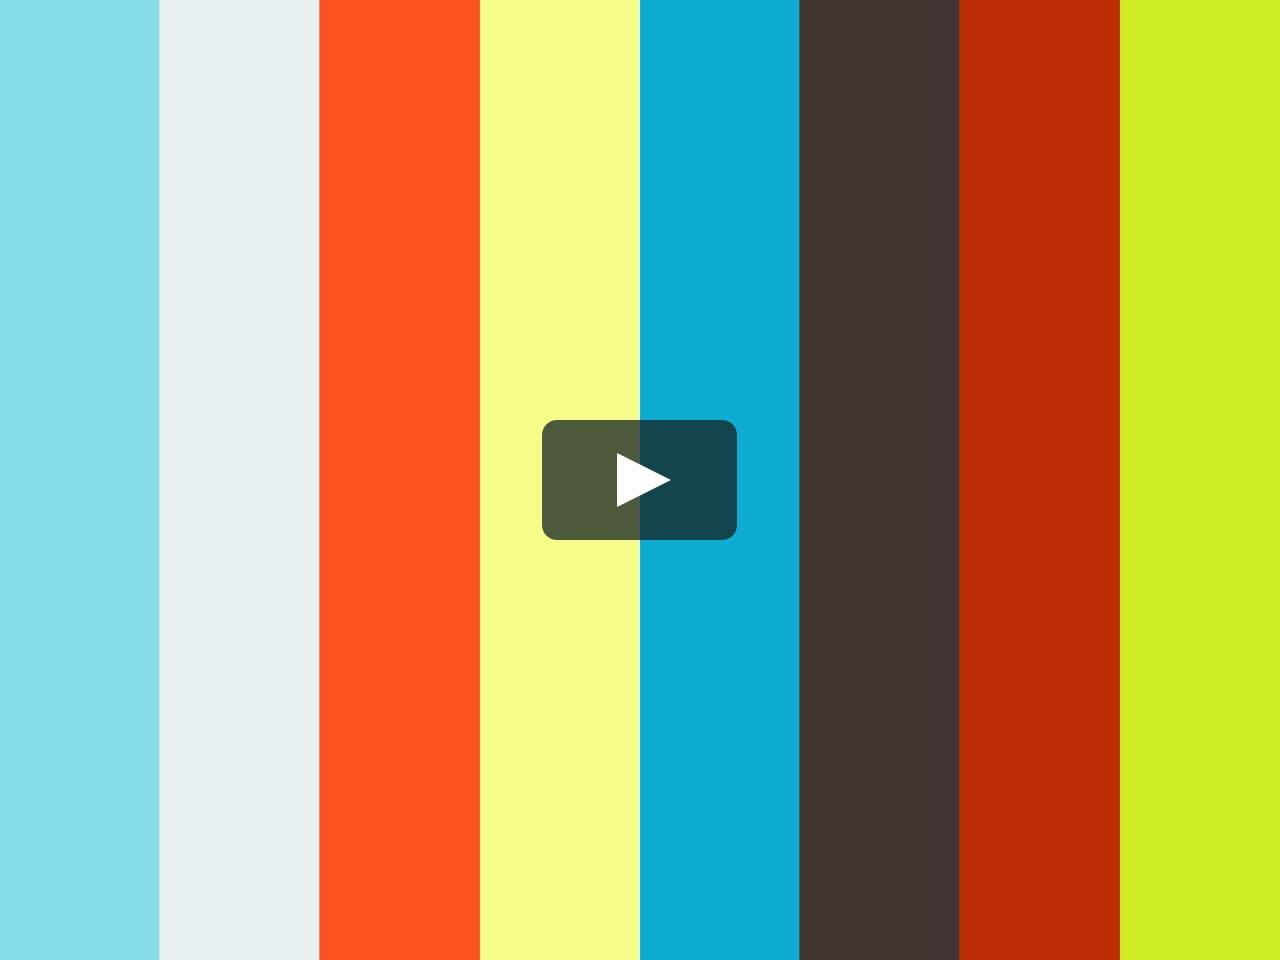 Diy Water Slide On Vimeo